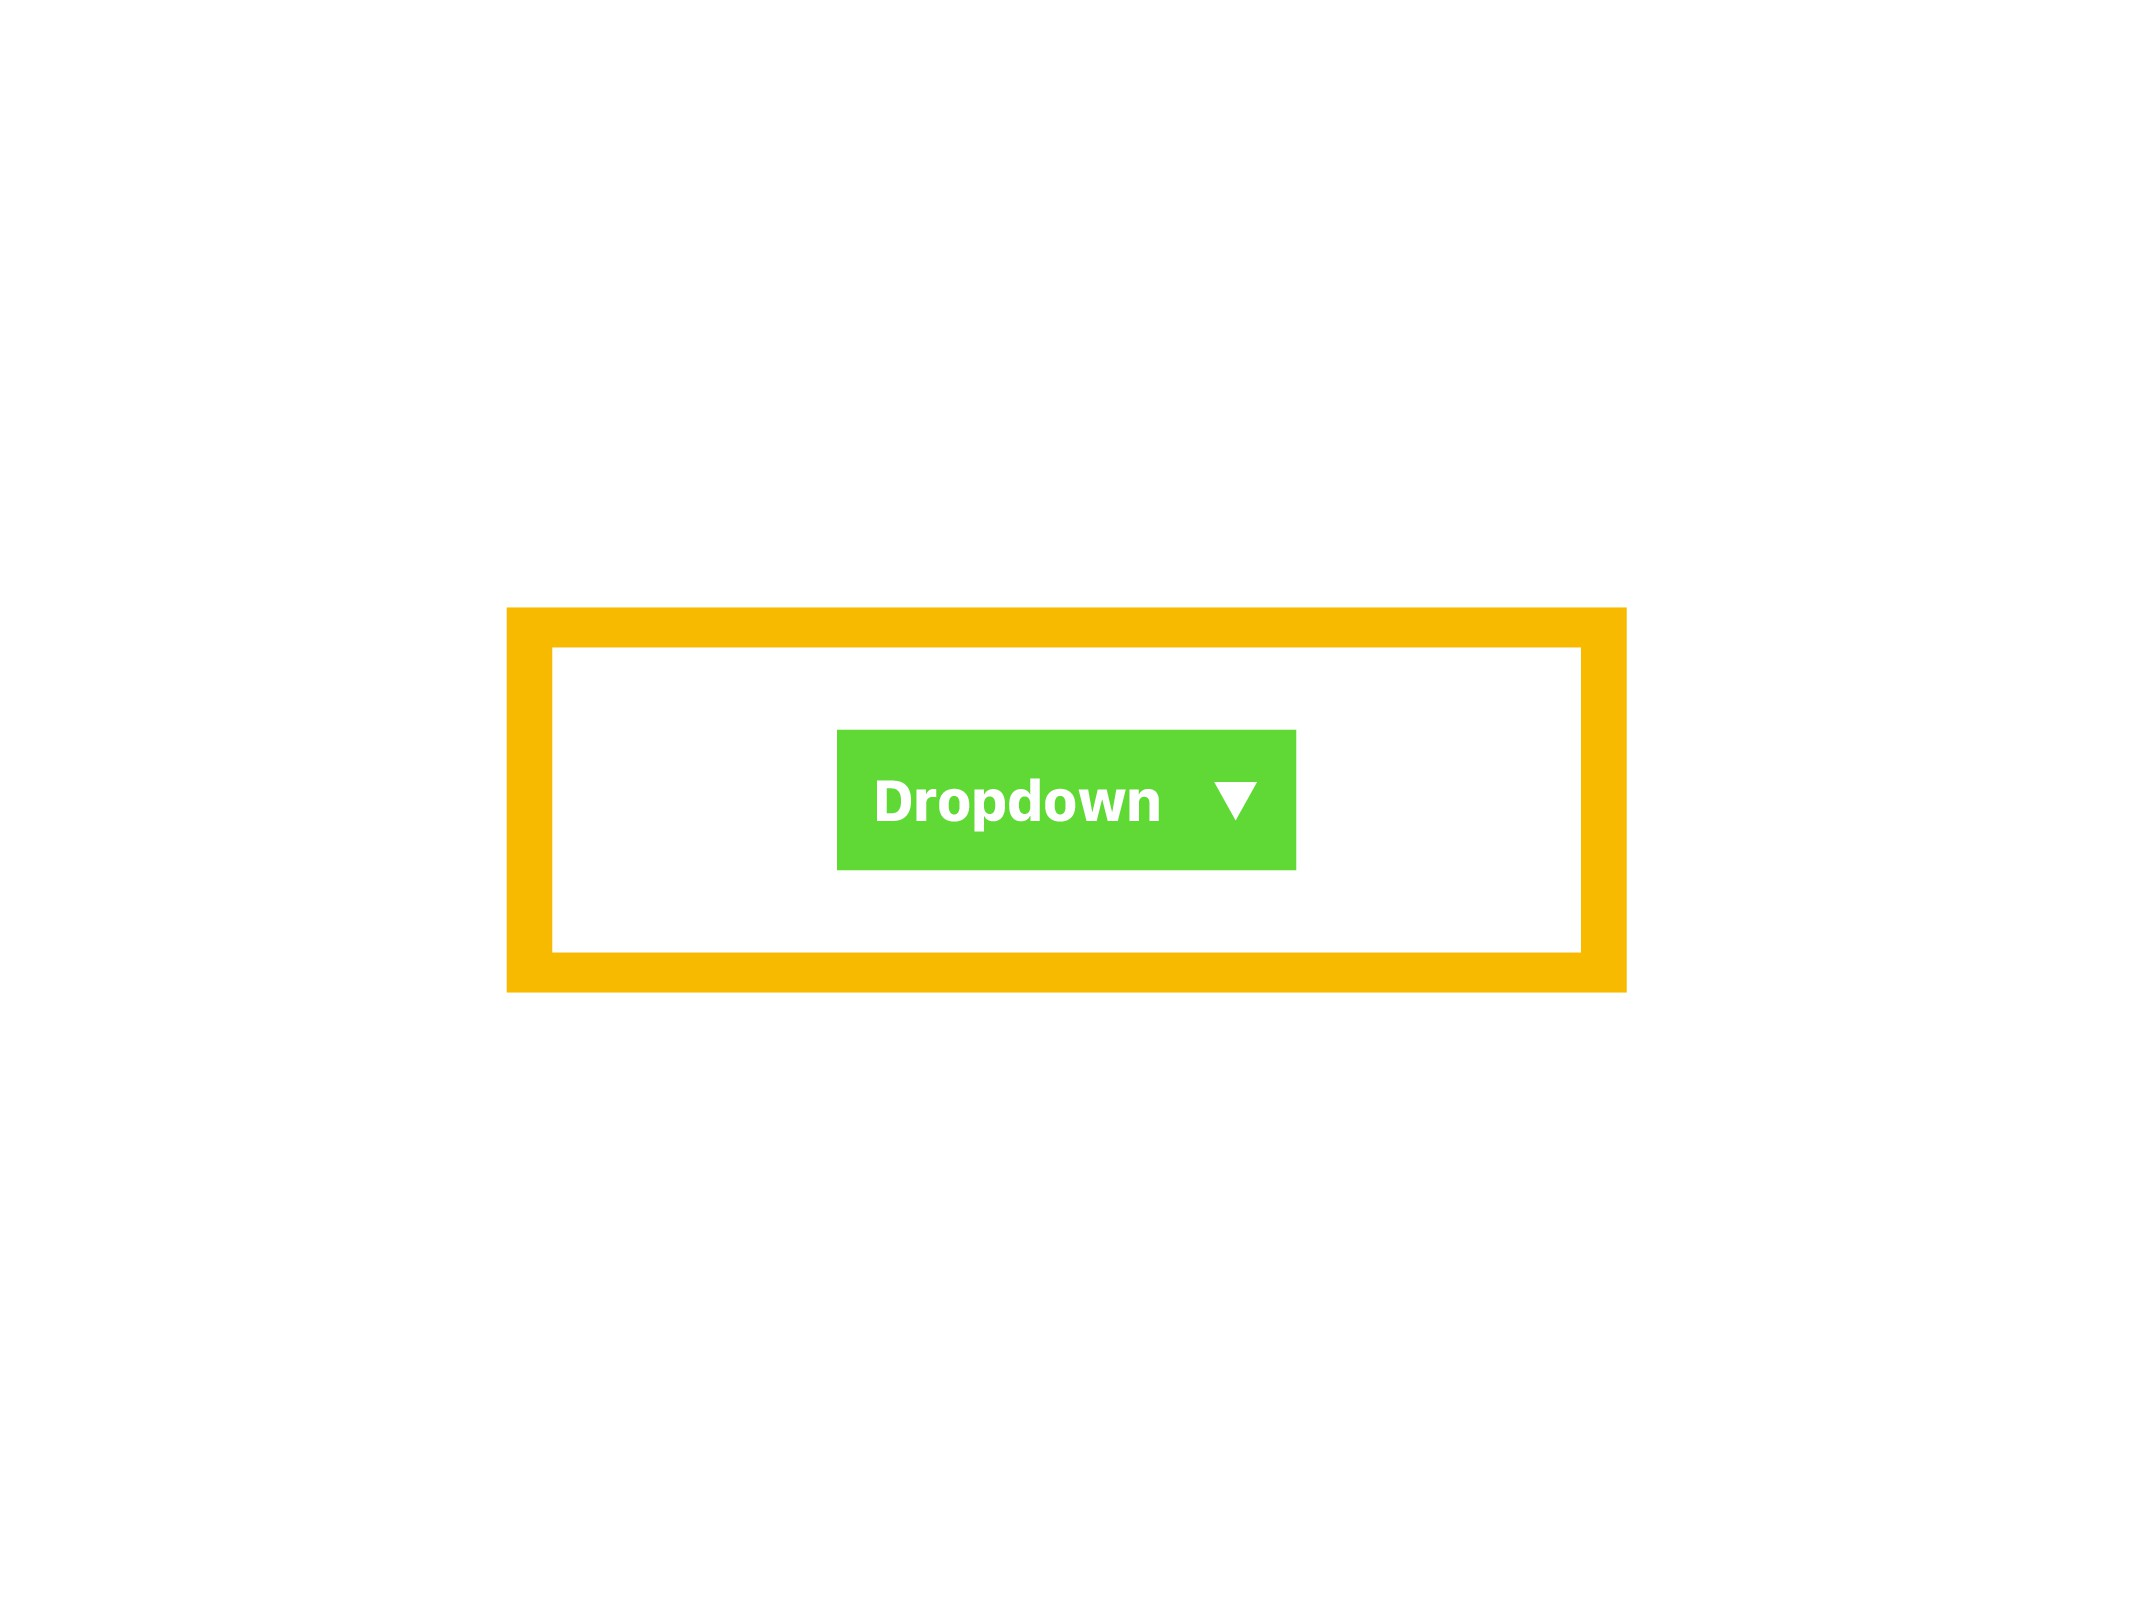 Dropdown ▼